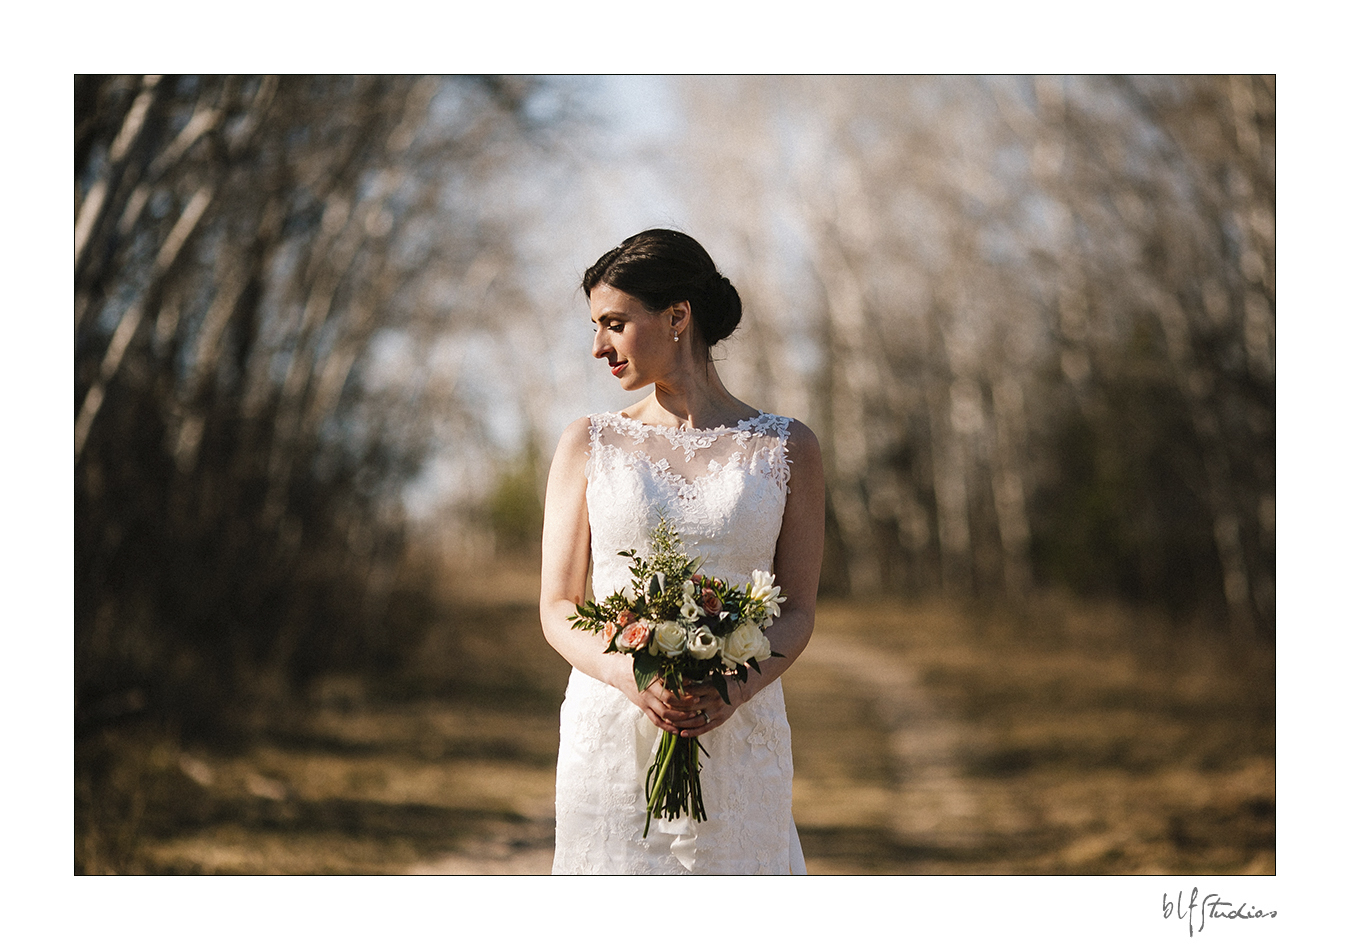 0022rimma-tyler--blfStudios-pineridgehollow-wedding.jpg